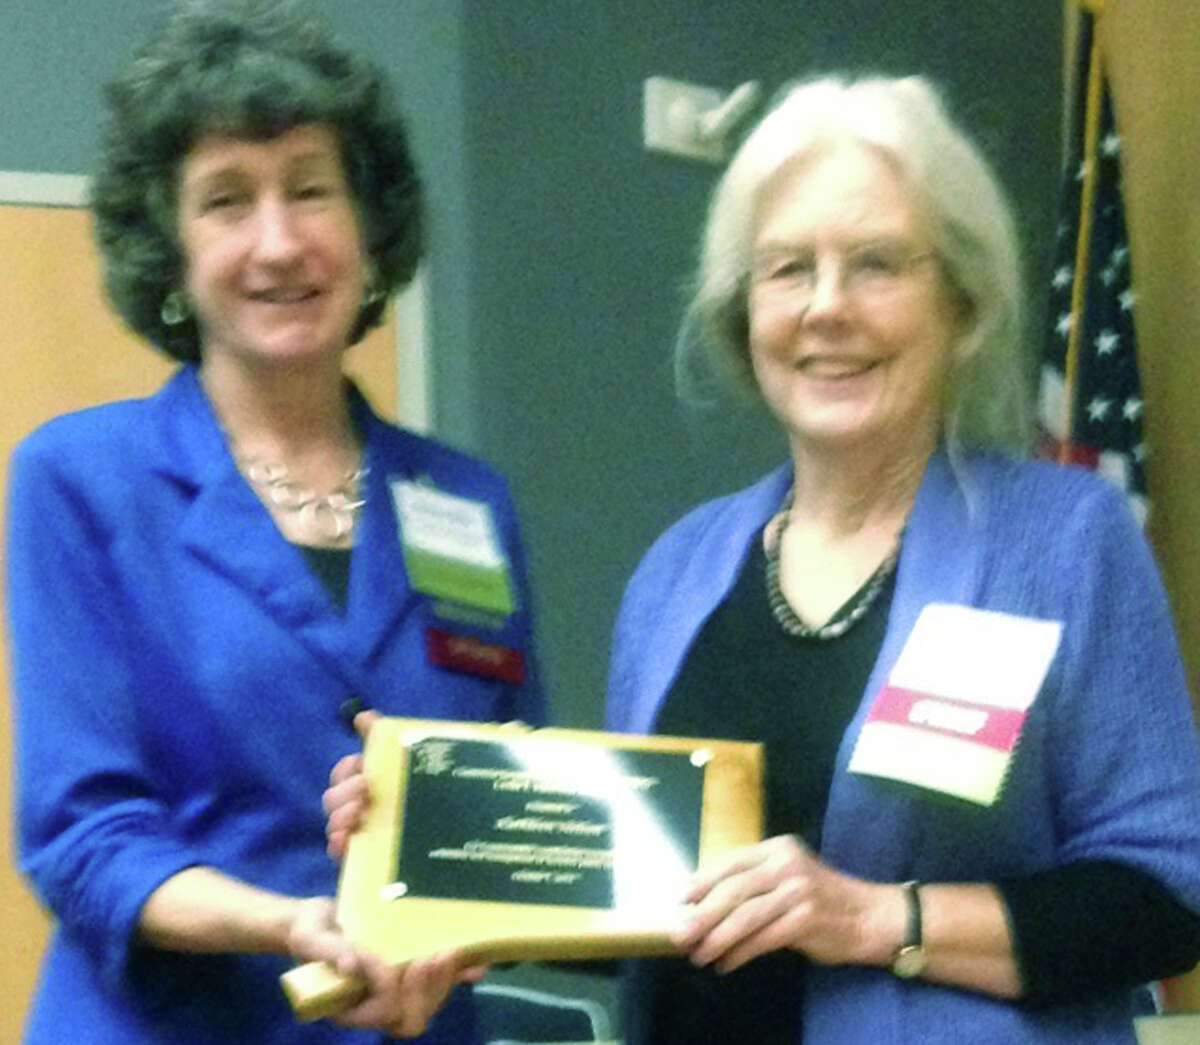 Kathleen Nelson, right, of New Milford receives the Les Mehrhoff Award from Donna Ellis during the Connecticut Invasive Working GroupâÄôs annual meeting recently at the University of Connecticut in Storrs. October 2014 Courtesy of Bob Gambino